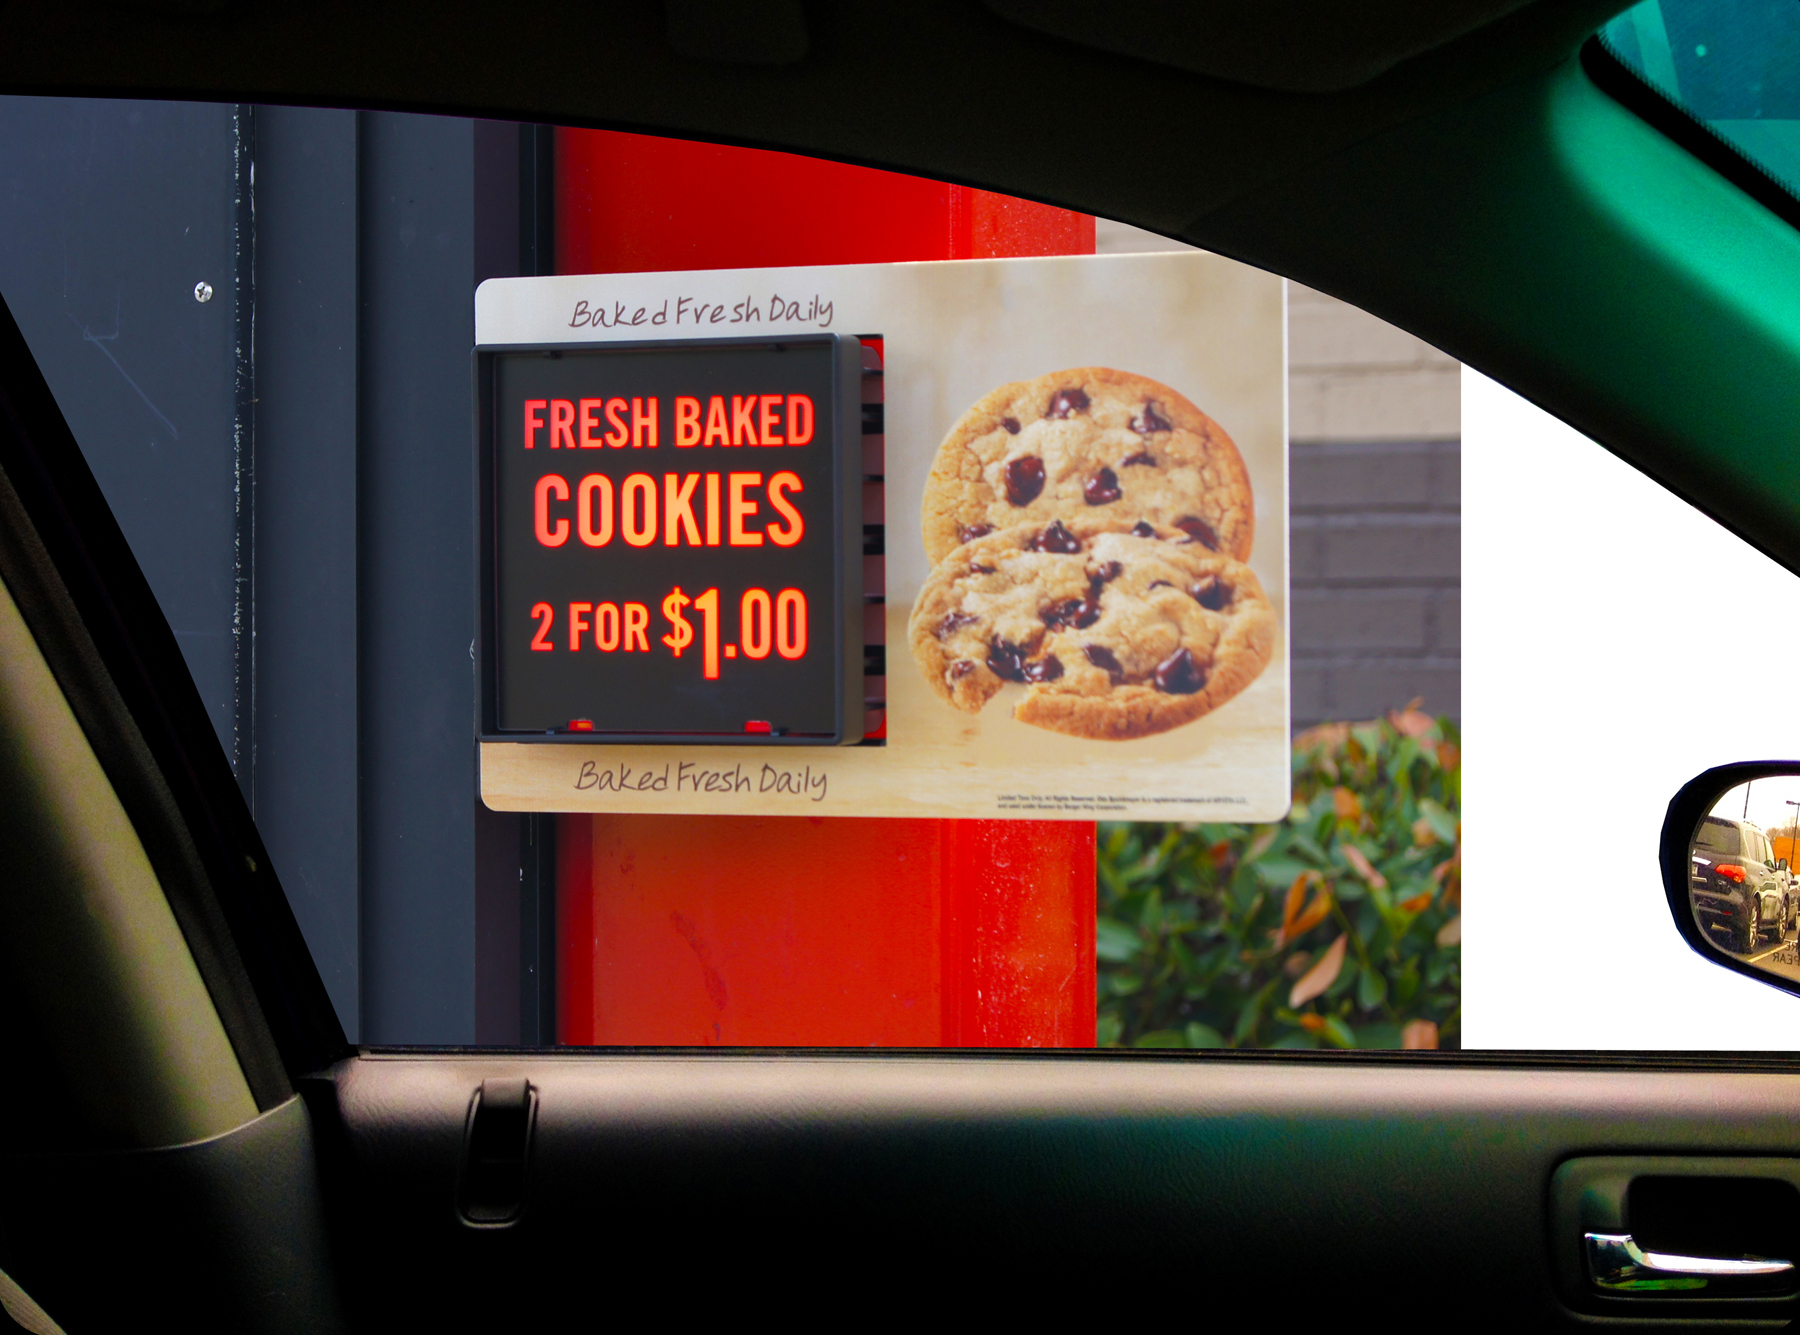 Unique for the QSR industry, the FlashRight Suggestive Sell Displays provide a dynamic, high-impact message that significantly increases impulse purchases by customers in the drive-thru. (Photo: Business Wire)